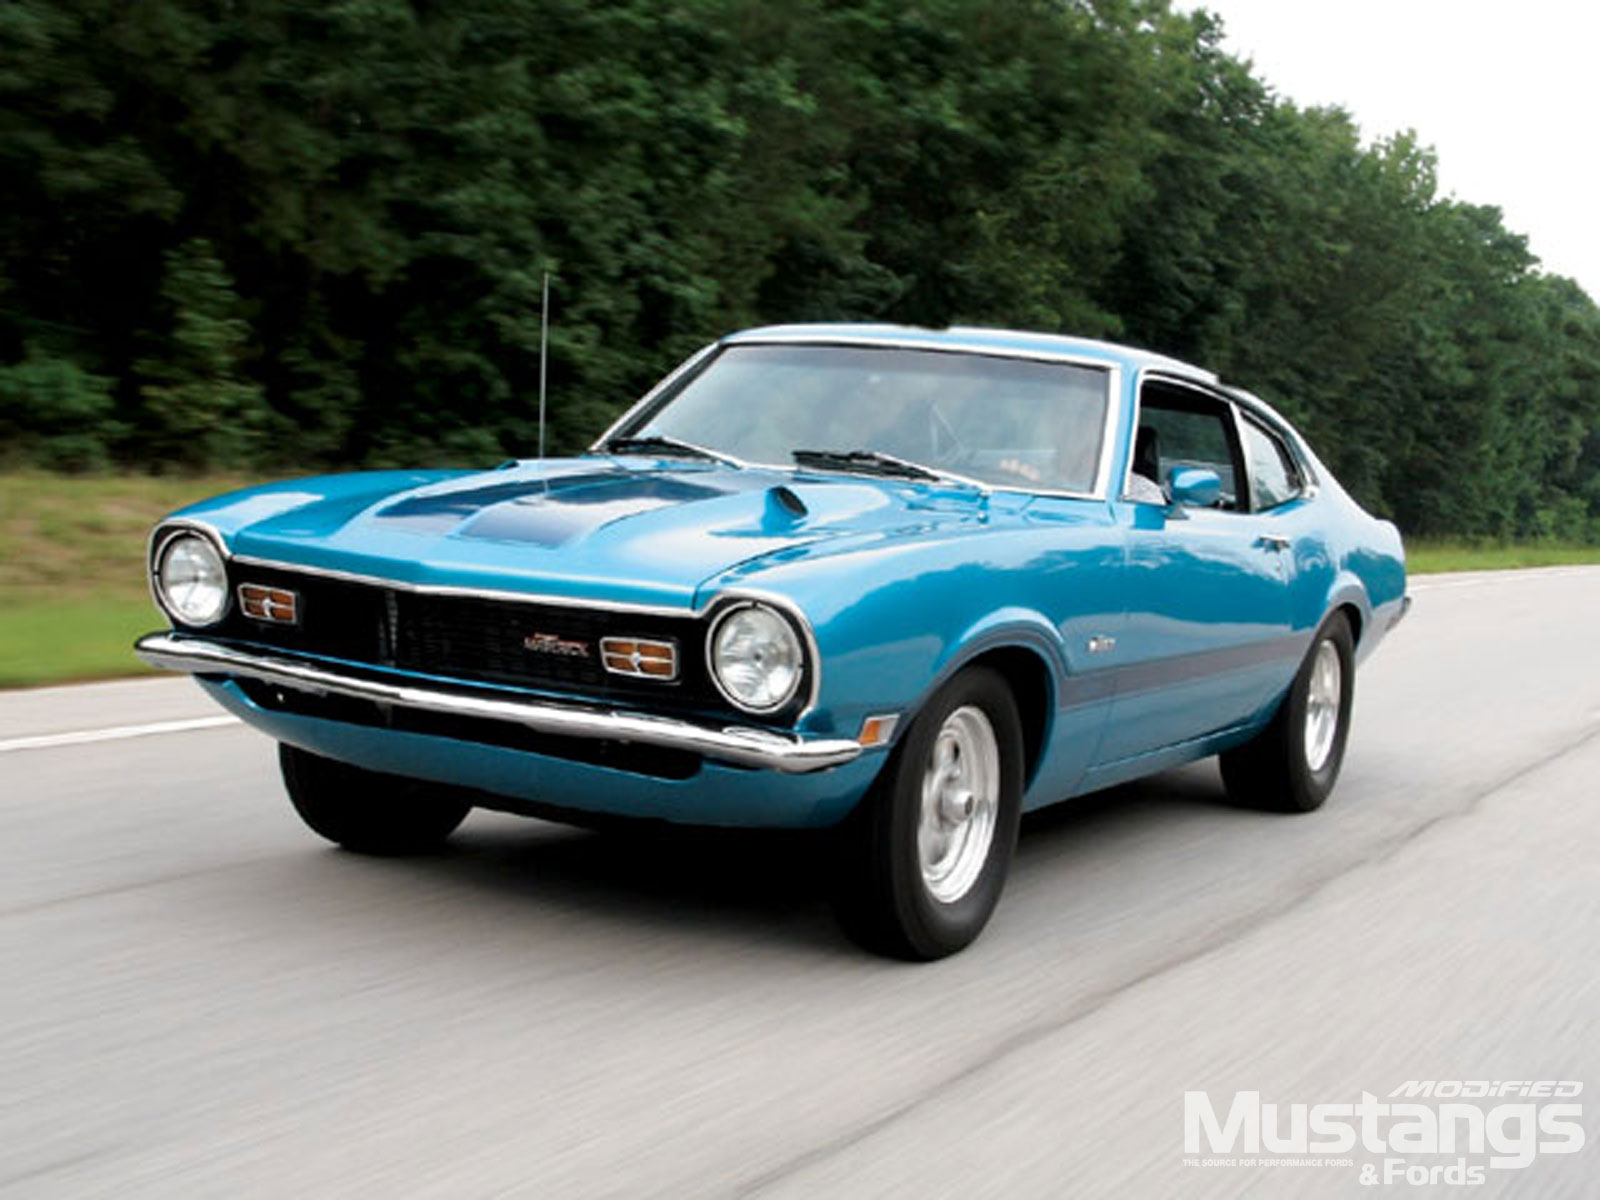 ... Super Sport do Brasil!: WallpaperSS - Ford Maverick Grabber 1972